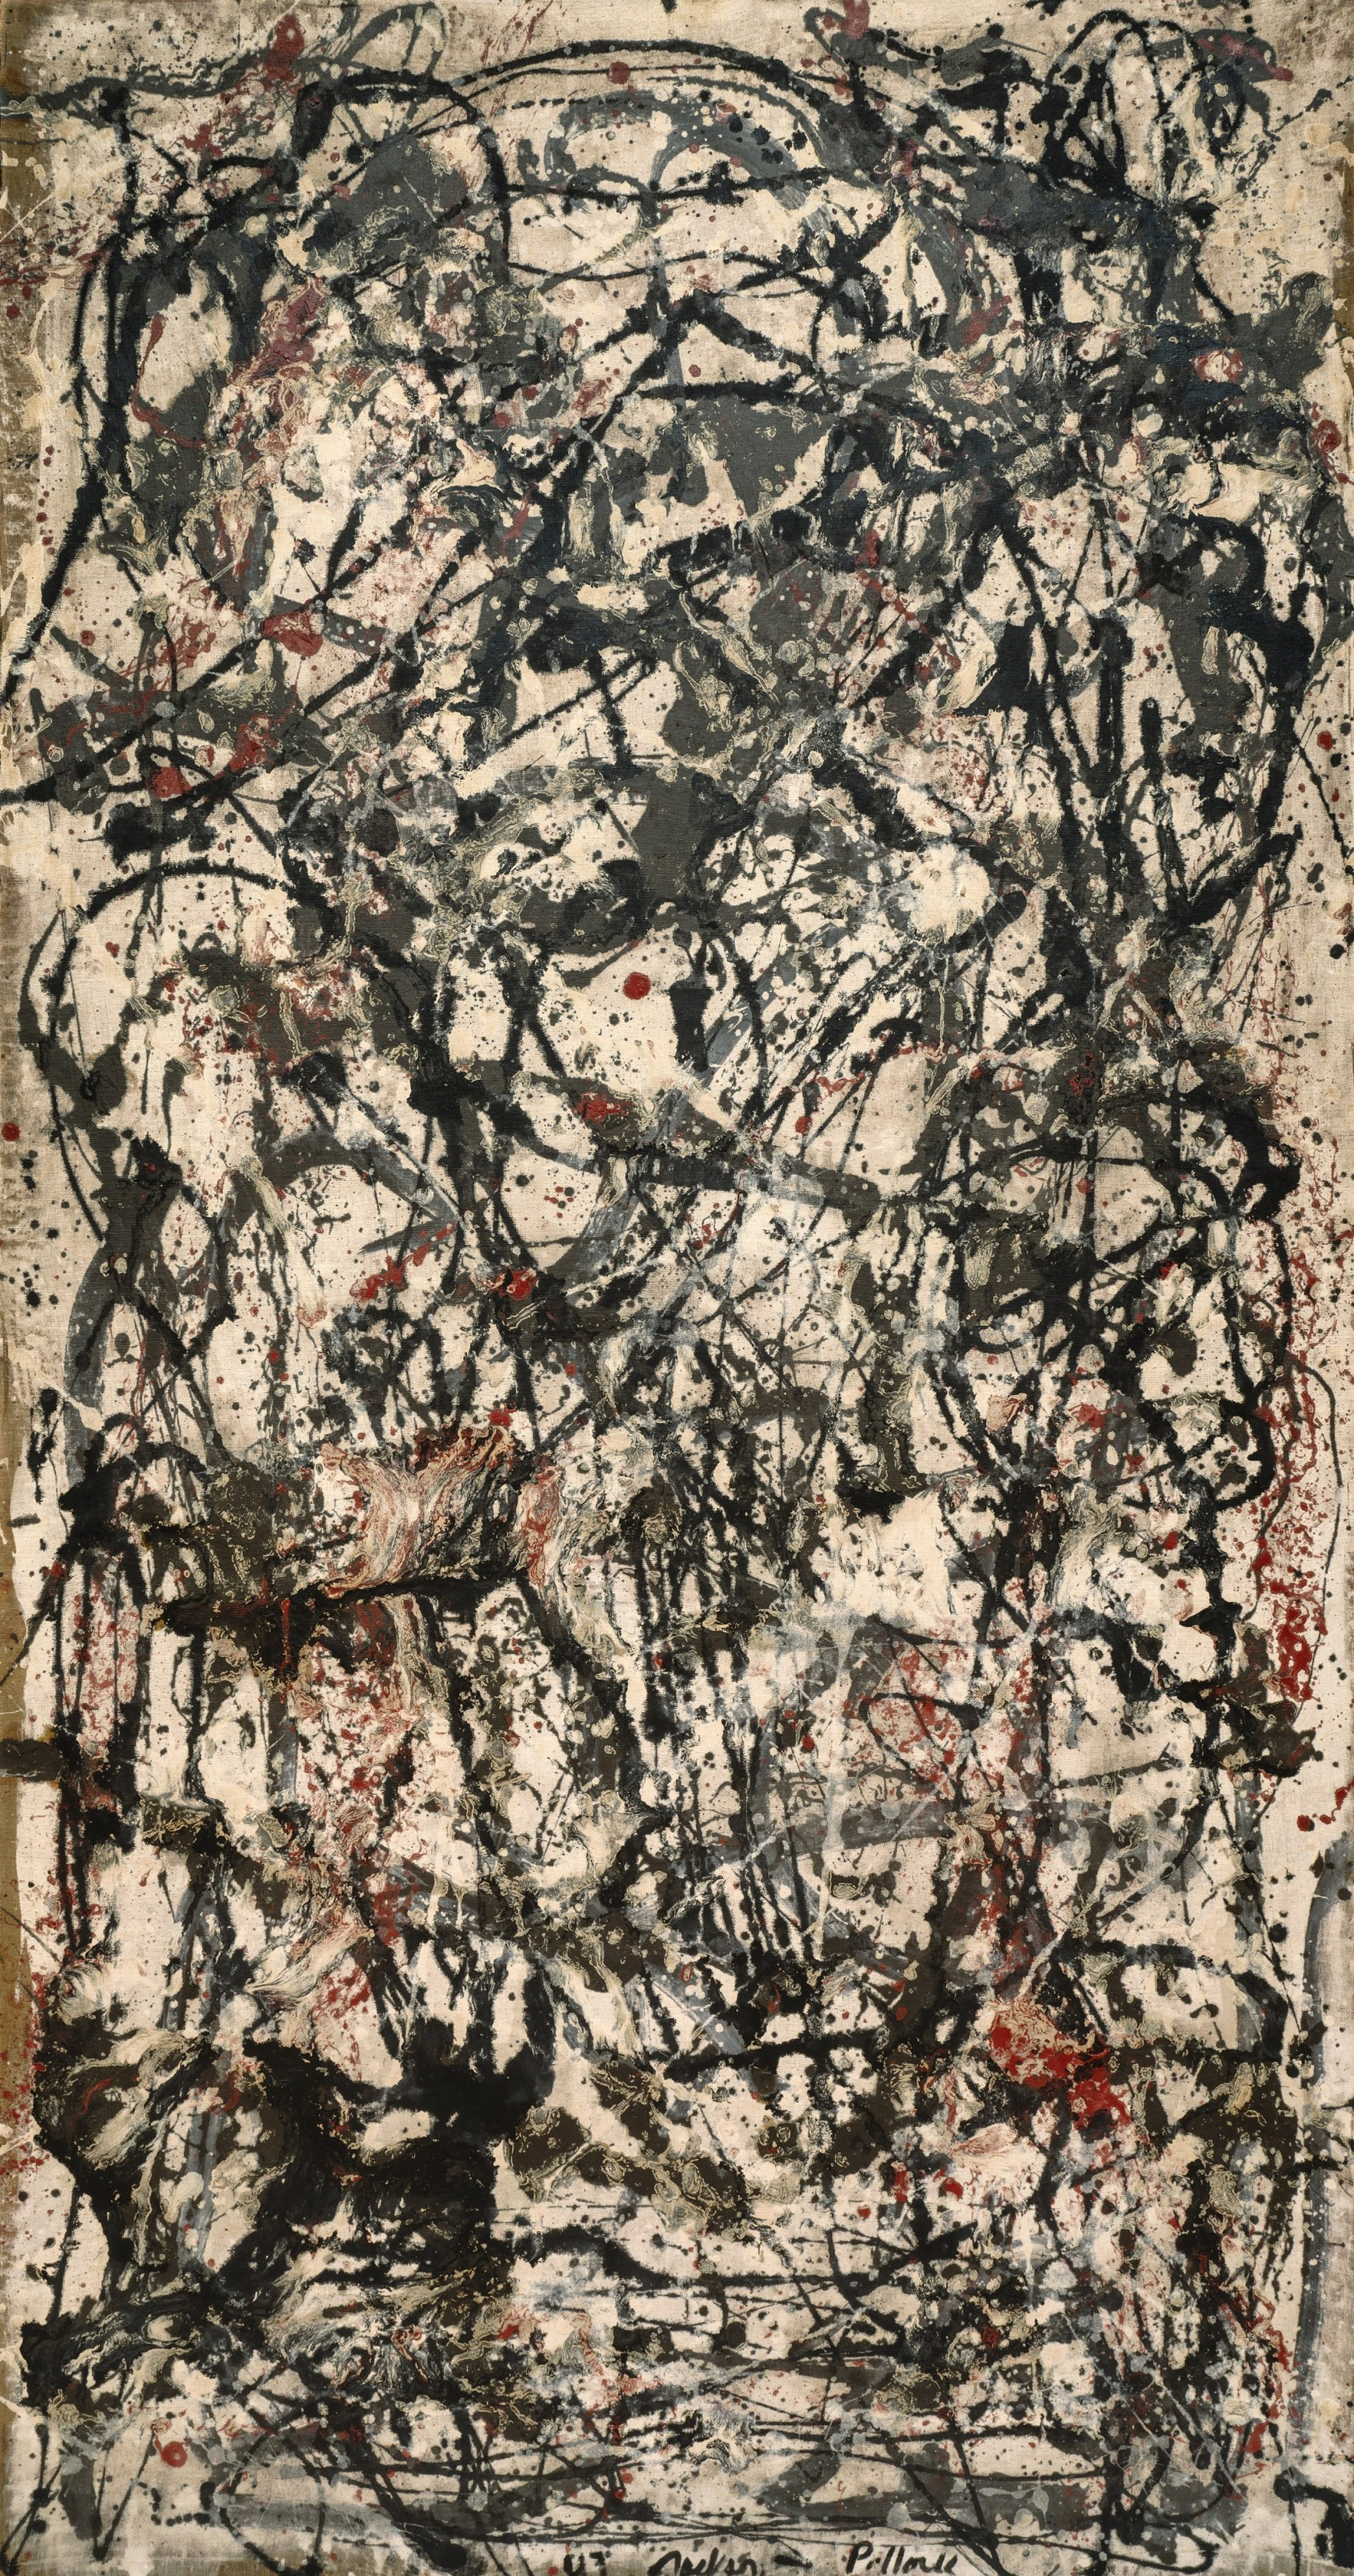 J.Pollock, Enchanted Forest 1947